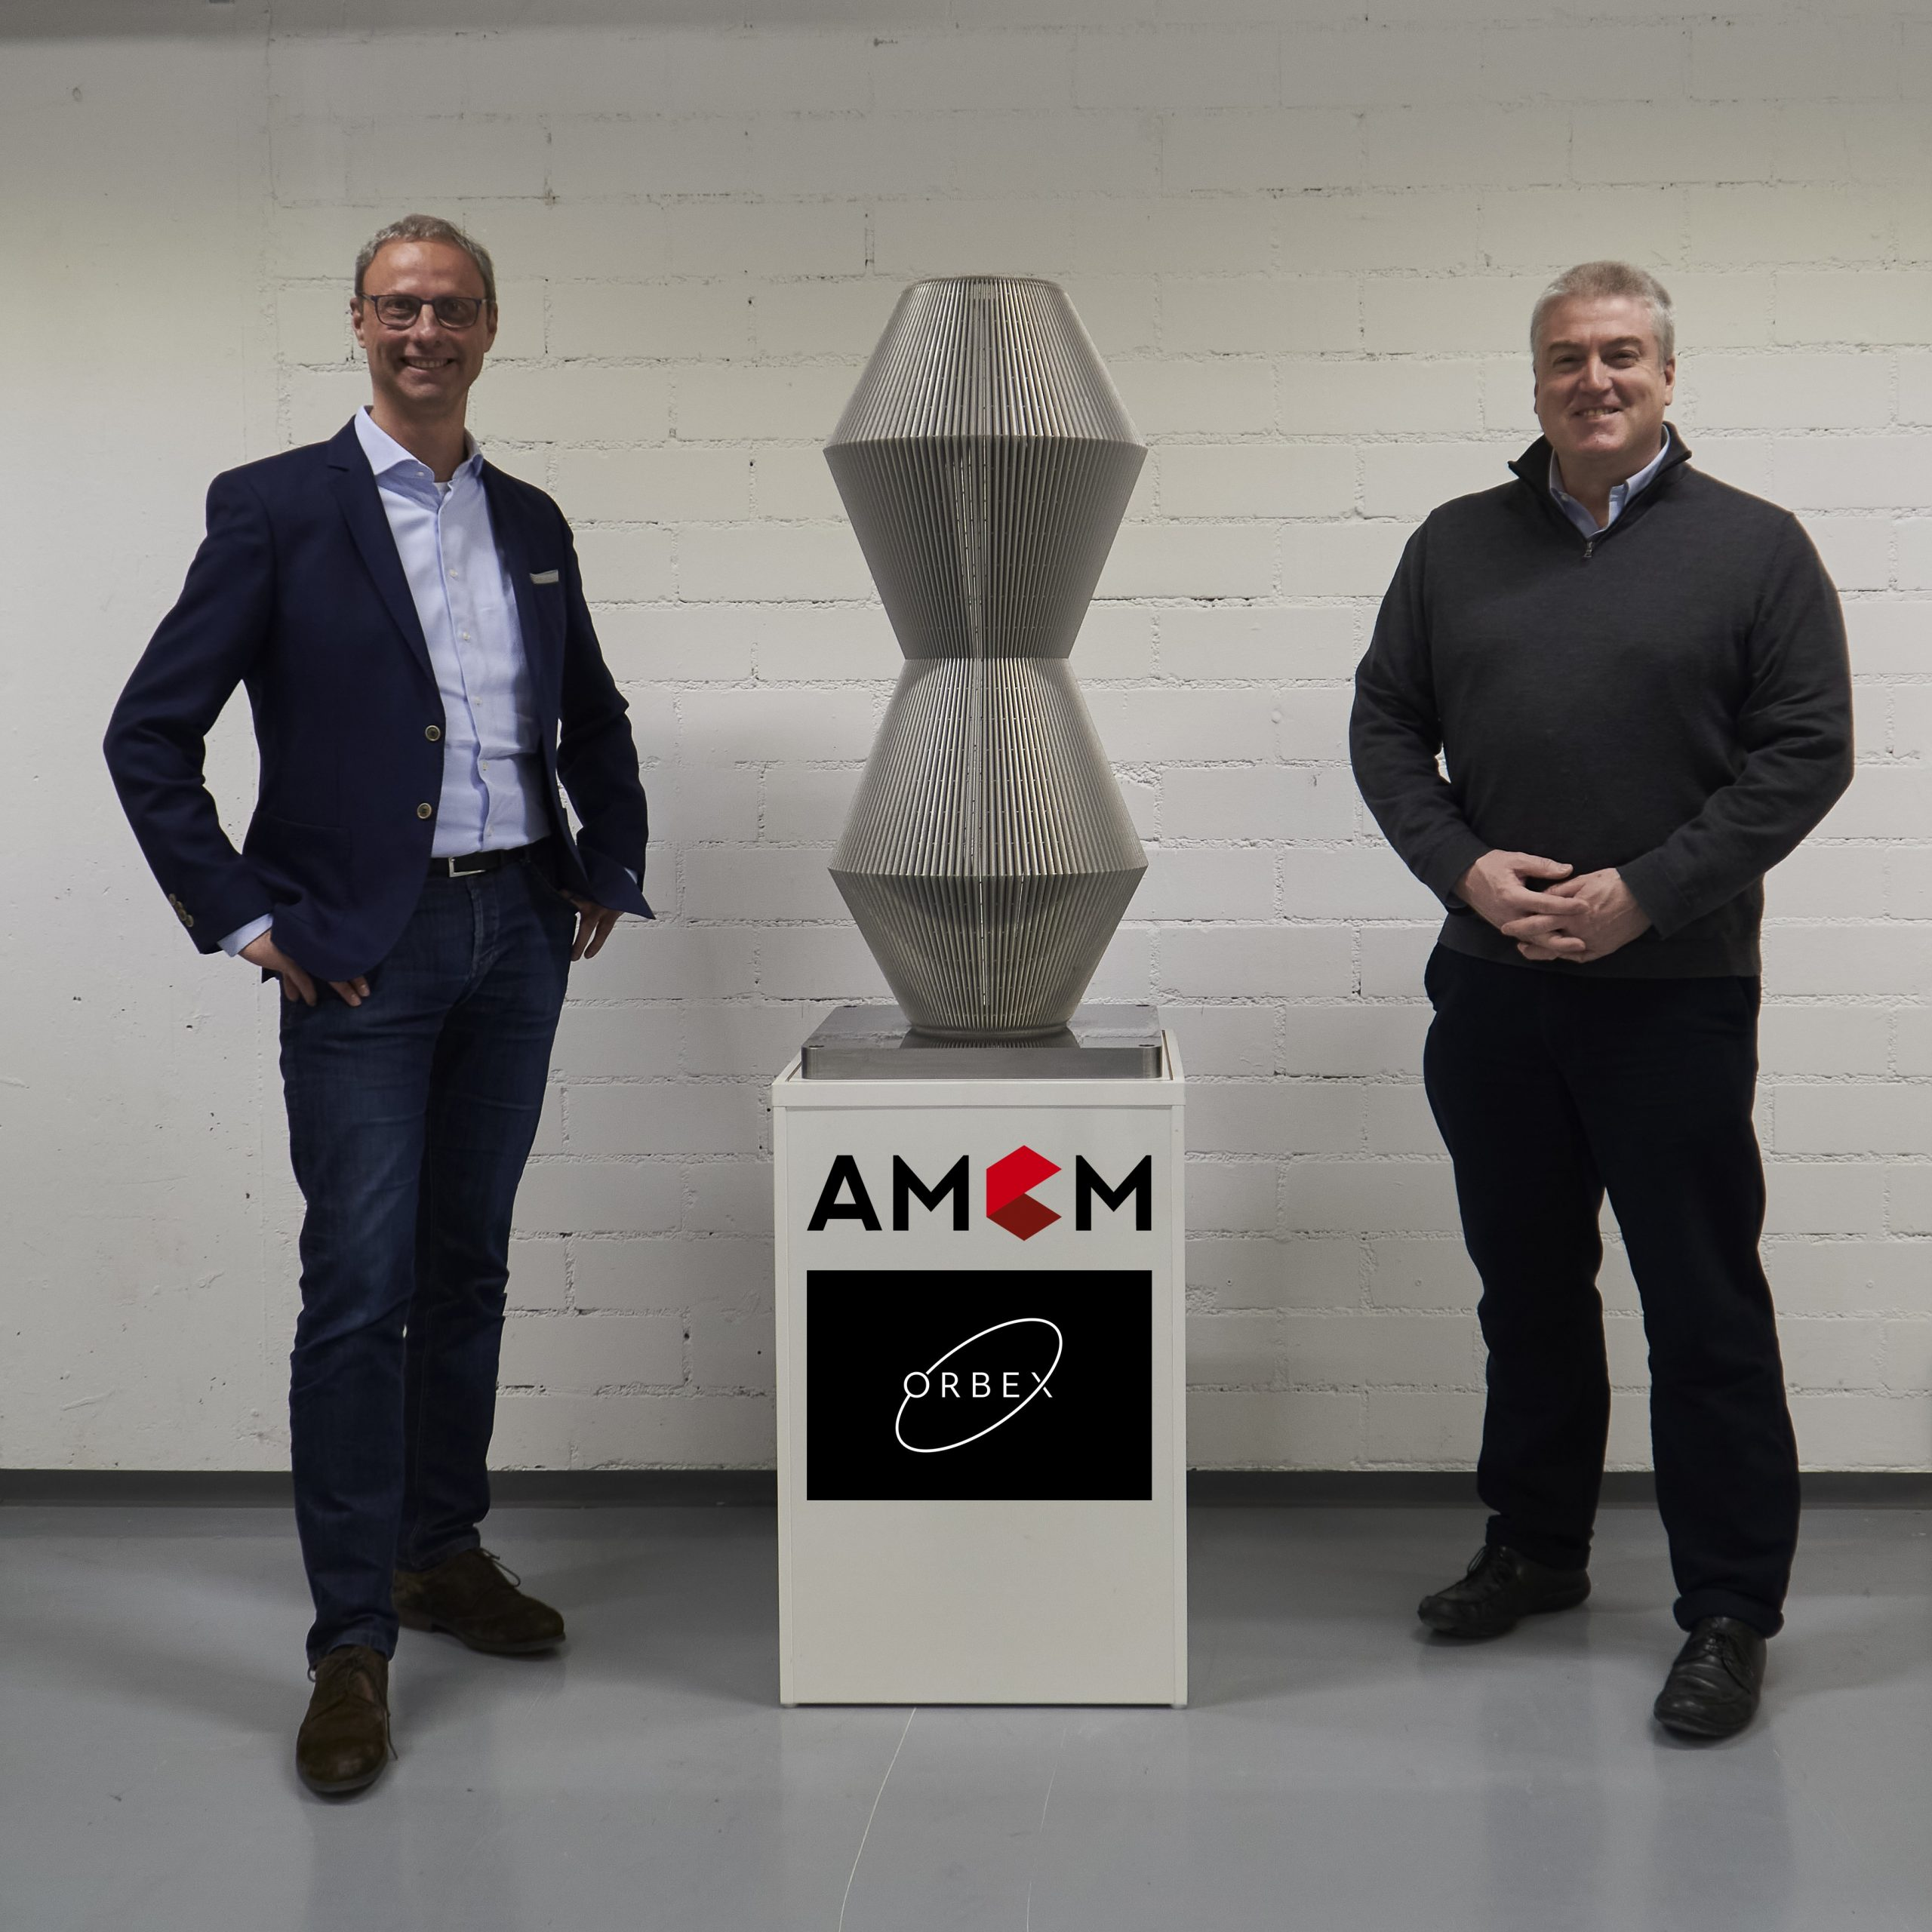 Martin Bullemer, Managing Director of AMCM (left) and Chris Larmour, CEO of Orbex (right). Photo via AMCM.